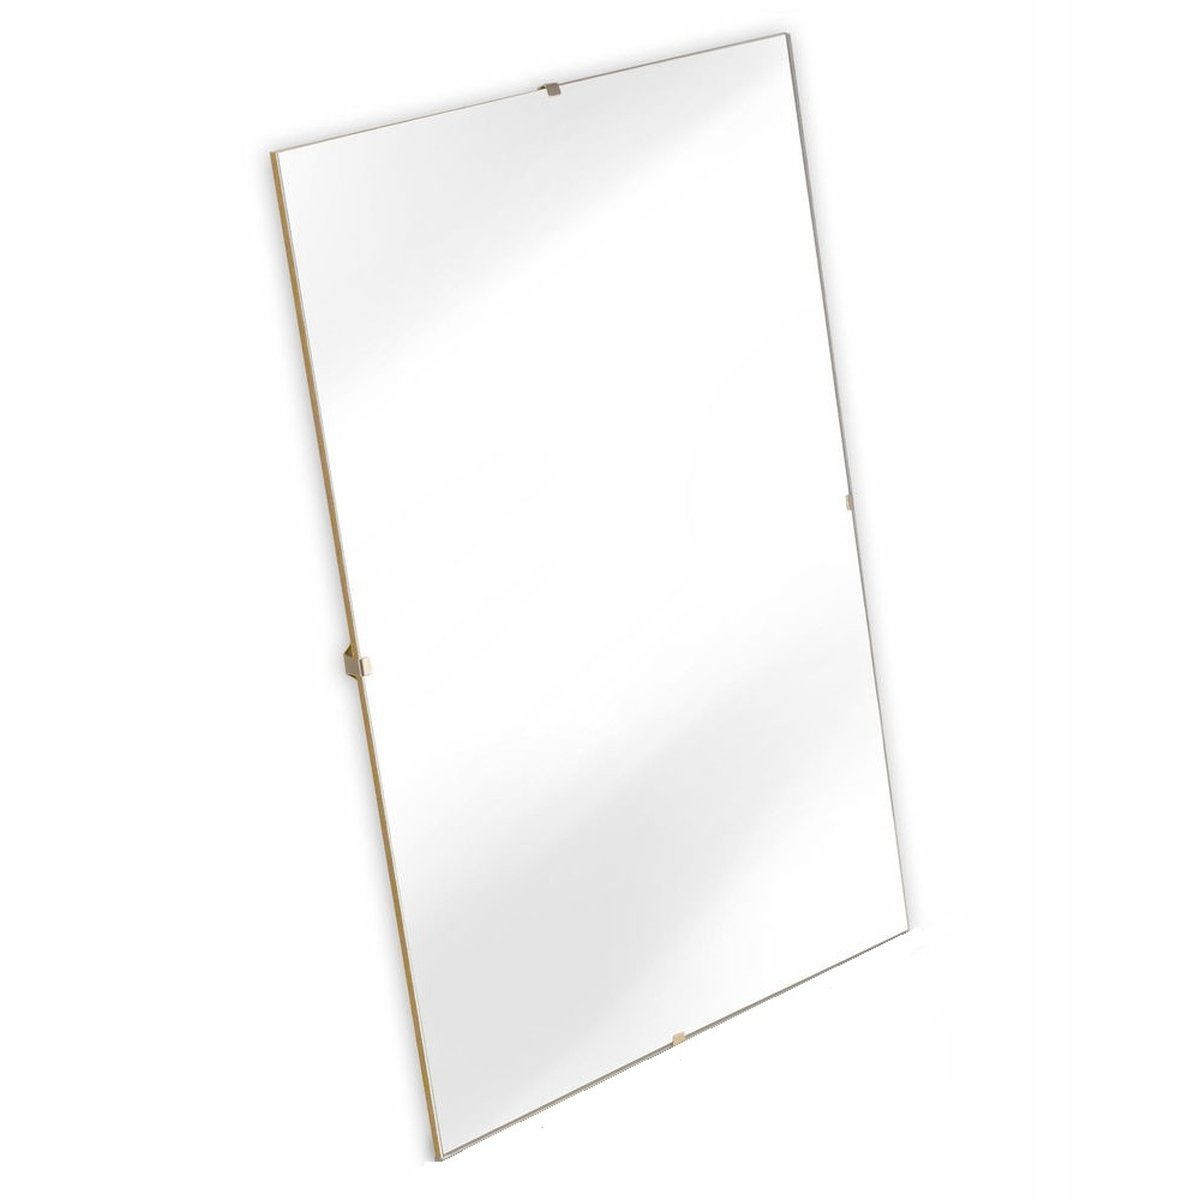 a4 clip frame picture photo frames a4 frameless poster acrylic 297mm x 210mm pack of 1 amazoncouk office products